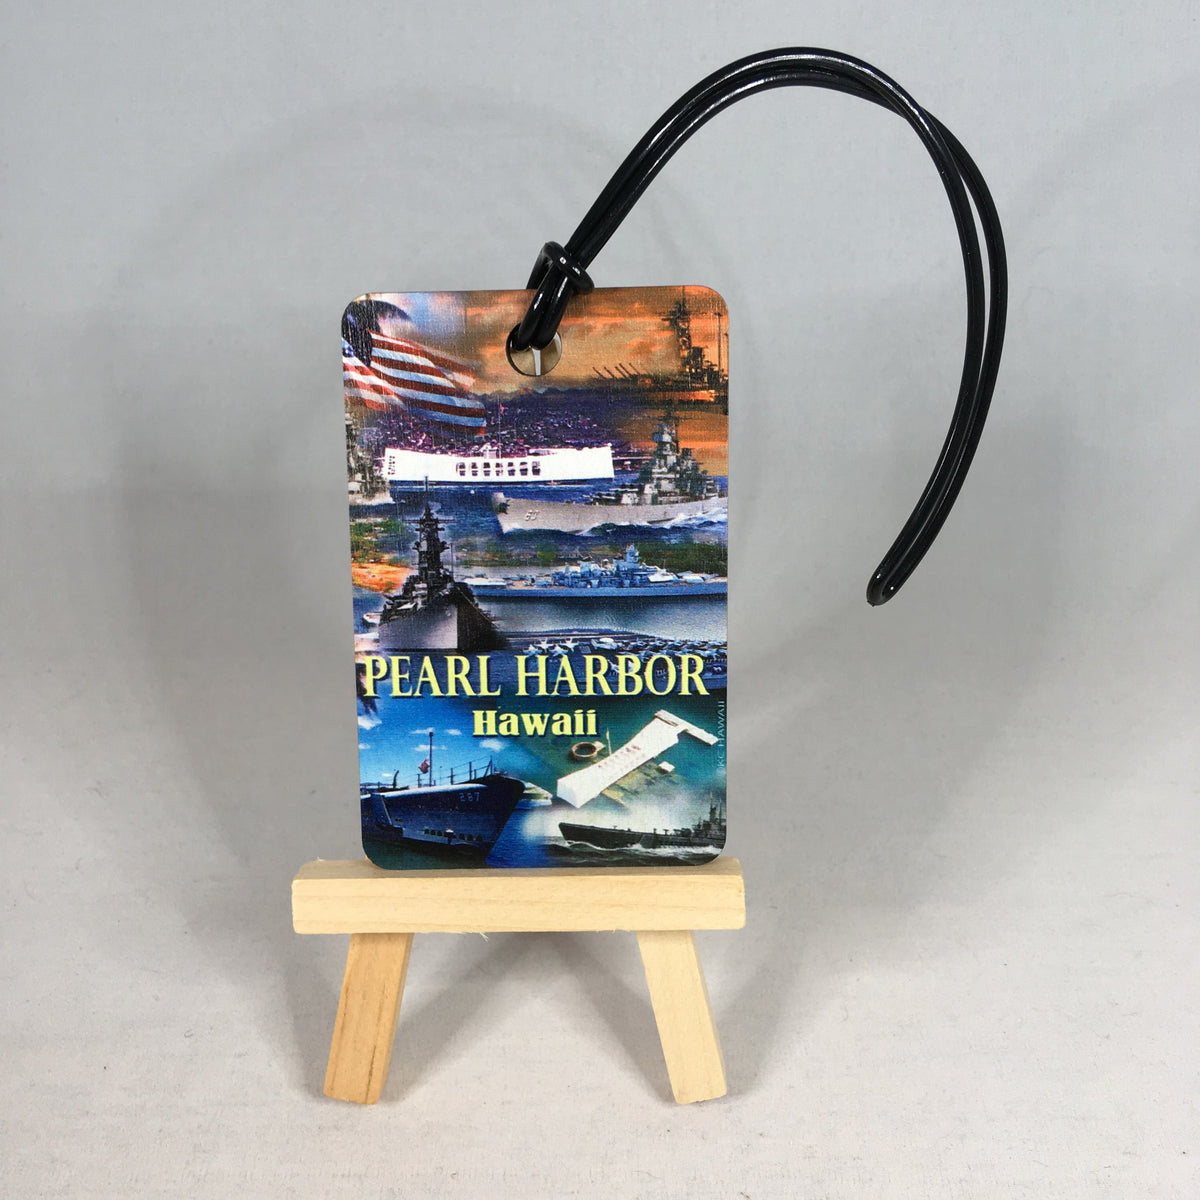 USS Arizona Pearl Harbor Souvenir Luggage Tag